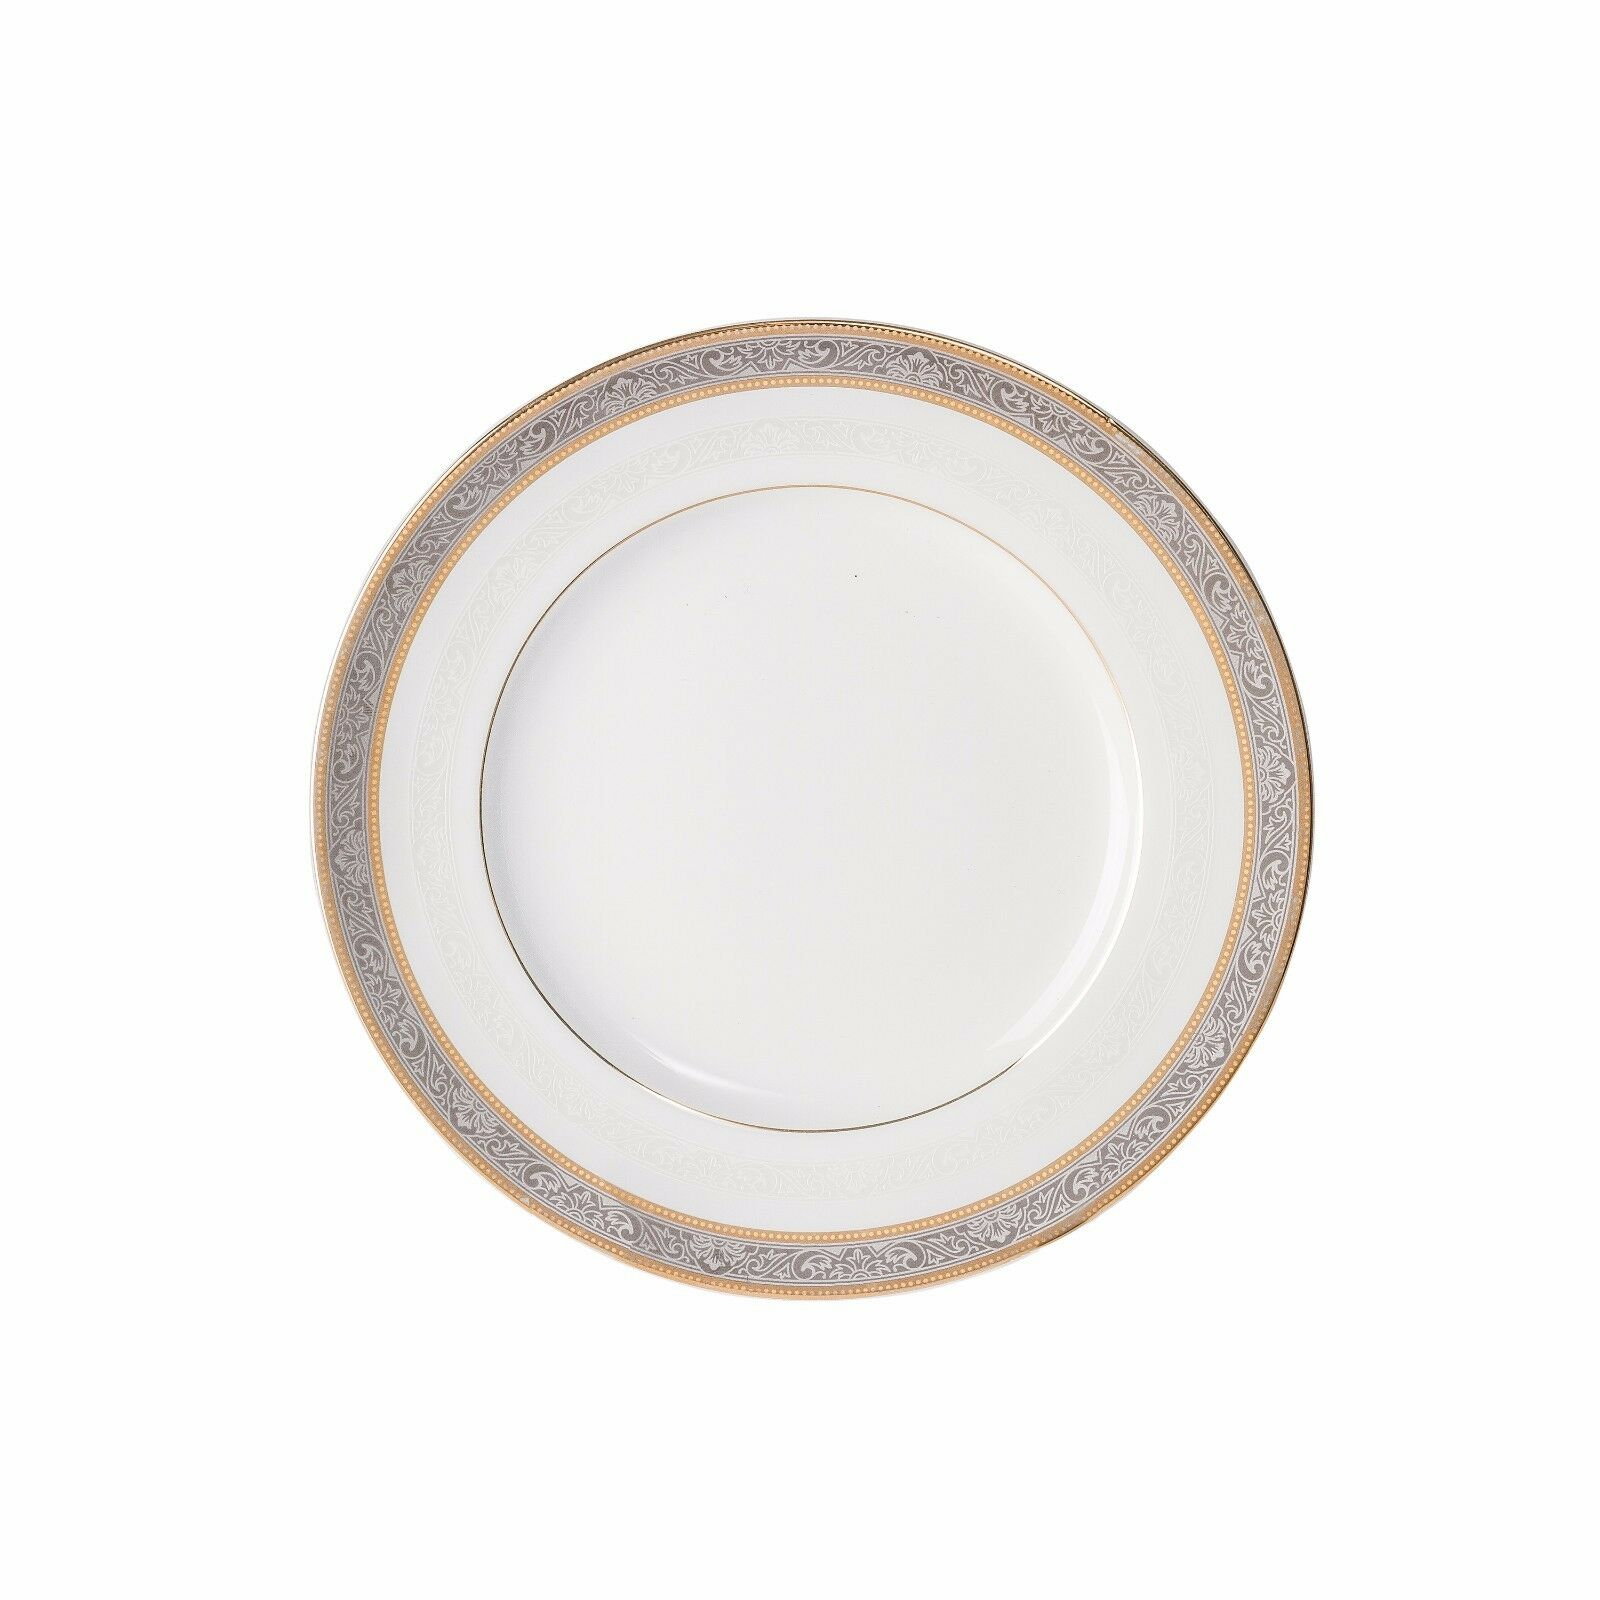 Brilliant - Royal D'oree Bread and Butter Plate 6.3  Set of 6 gold Platinum rim